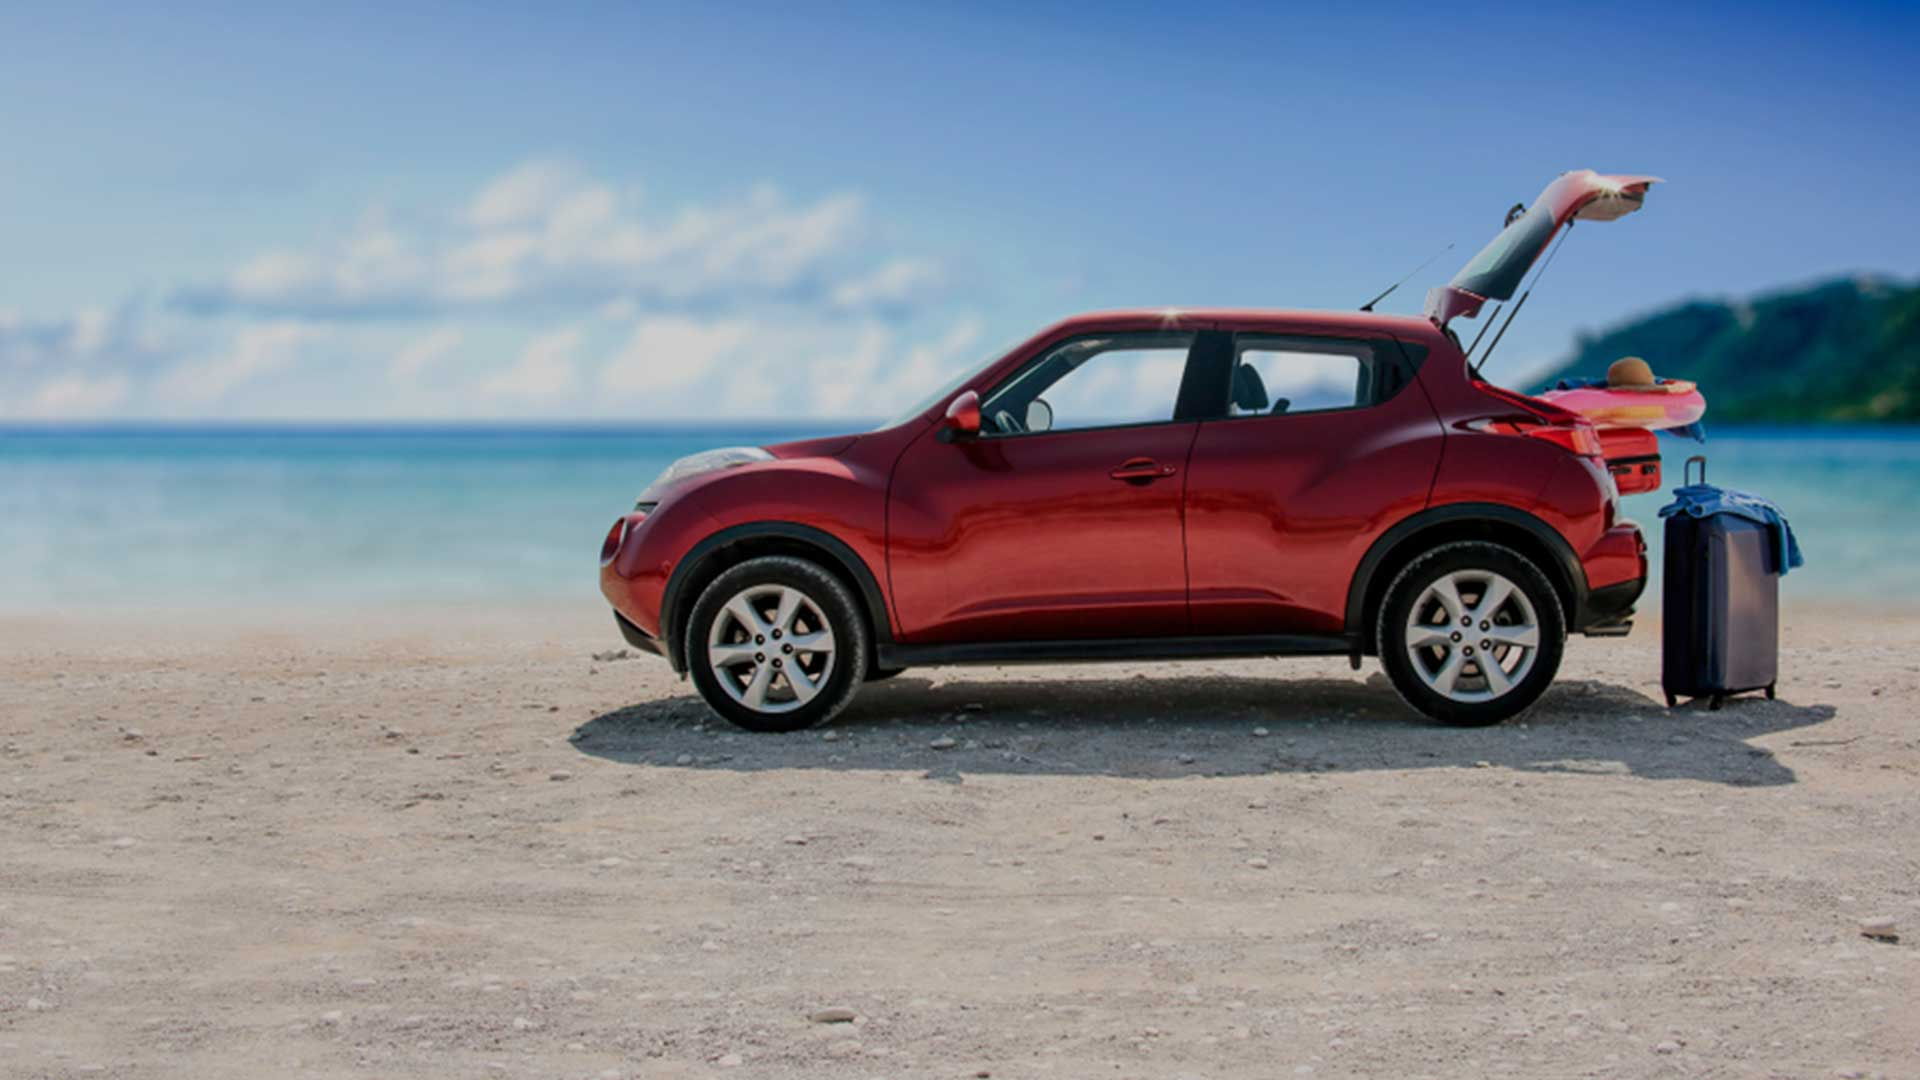 red suv car on the beach